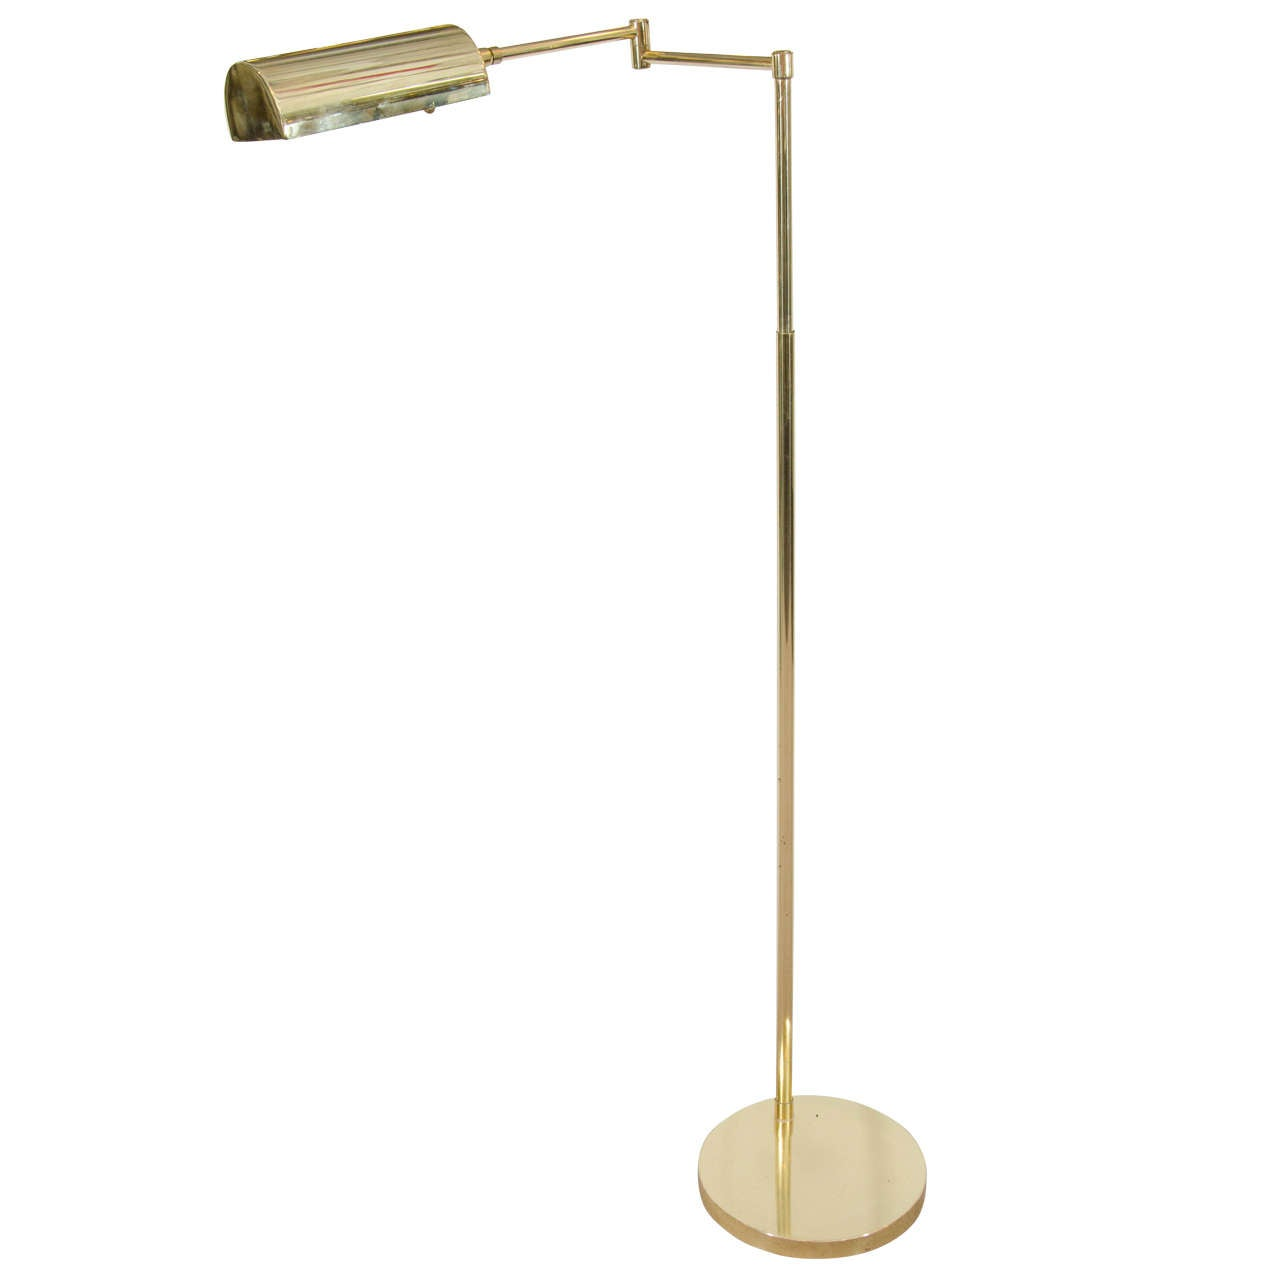 Midcentury koch and lowy swing arm adjustable brass floor lamp at midcentury koch and lowy swing arm adjustable brass floor lamp for sale mozeypictures